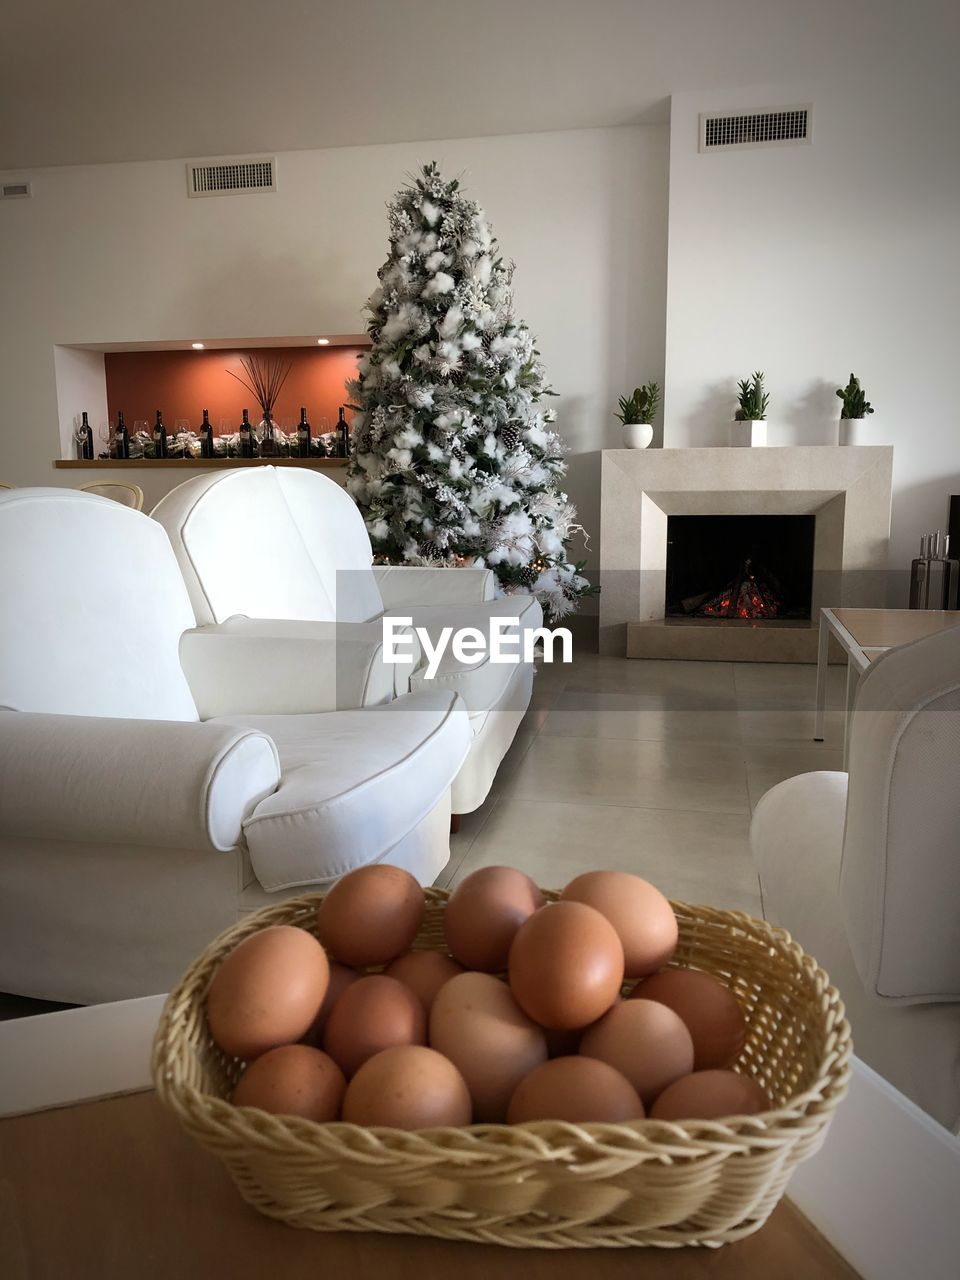 indoors, table, home interior, egg, sofa, chair, no people, living room, domestic life, christmas, home showcase interior, day